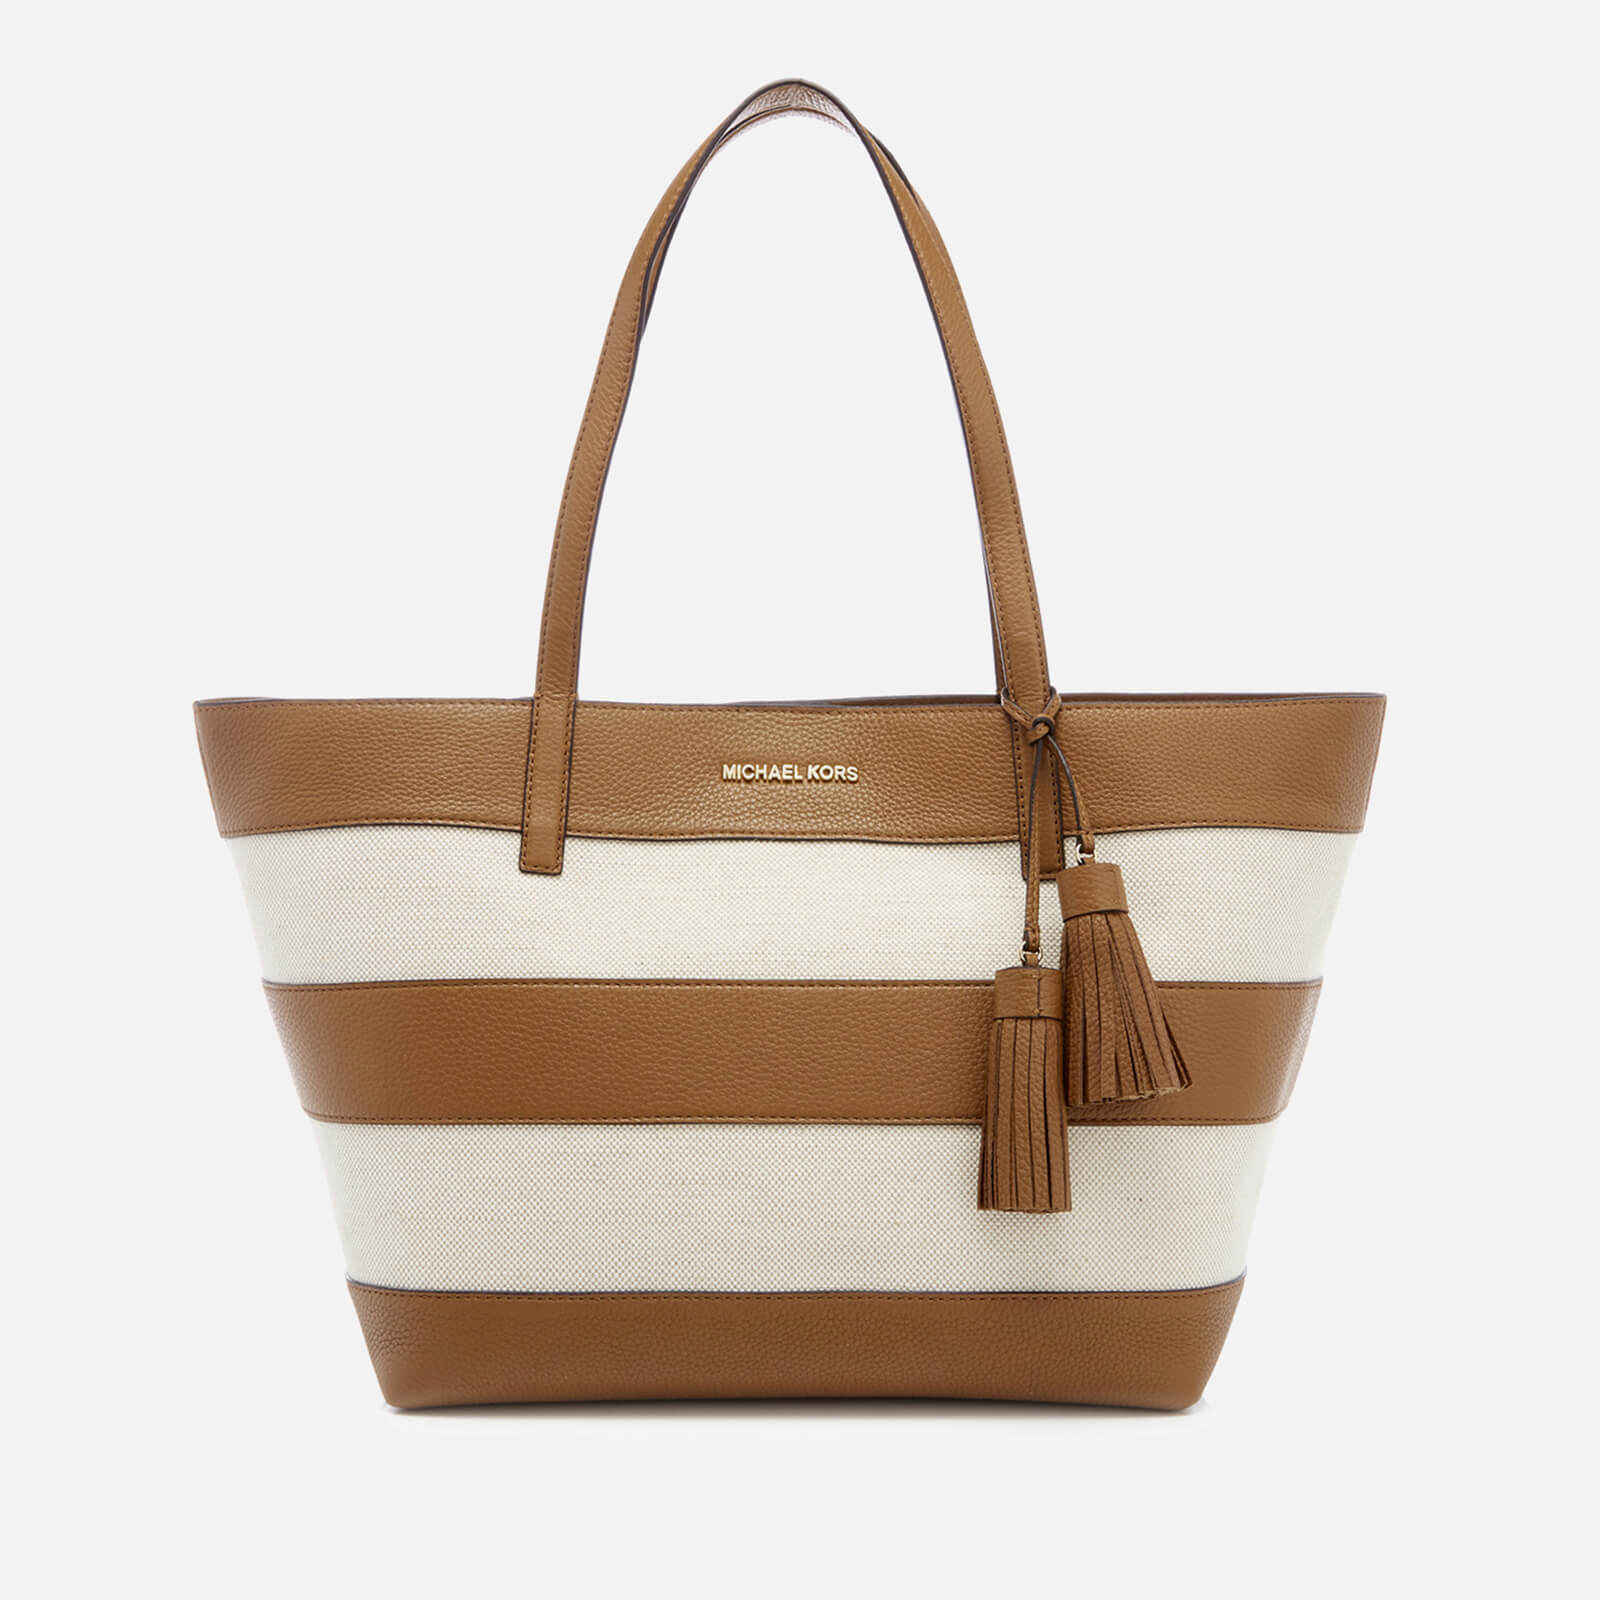 125ce30a4152 MICHAEL MICHAEL KORS Women's Striped Canvas Large East West Tote Bag -  Natural/Acorn - Free UK Delivery over £50